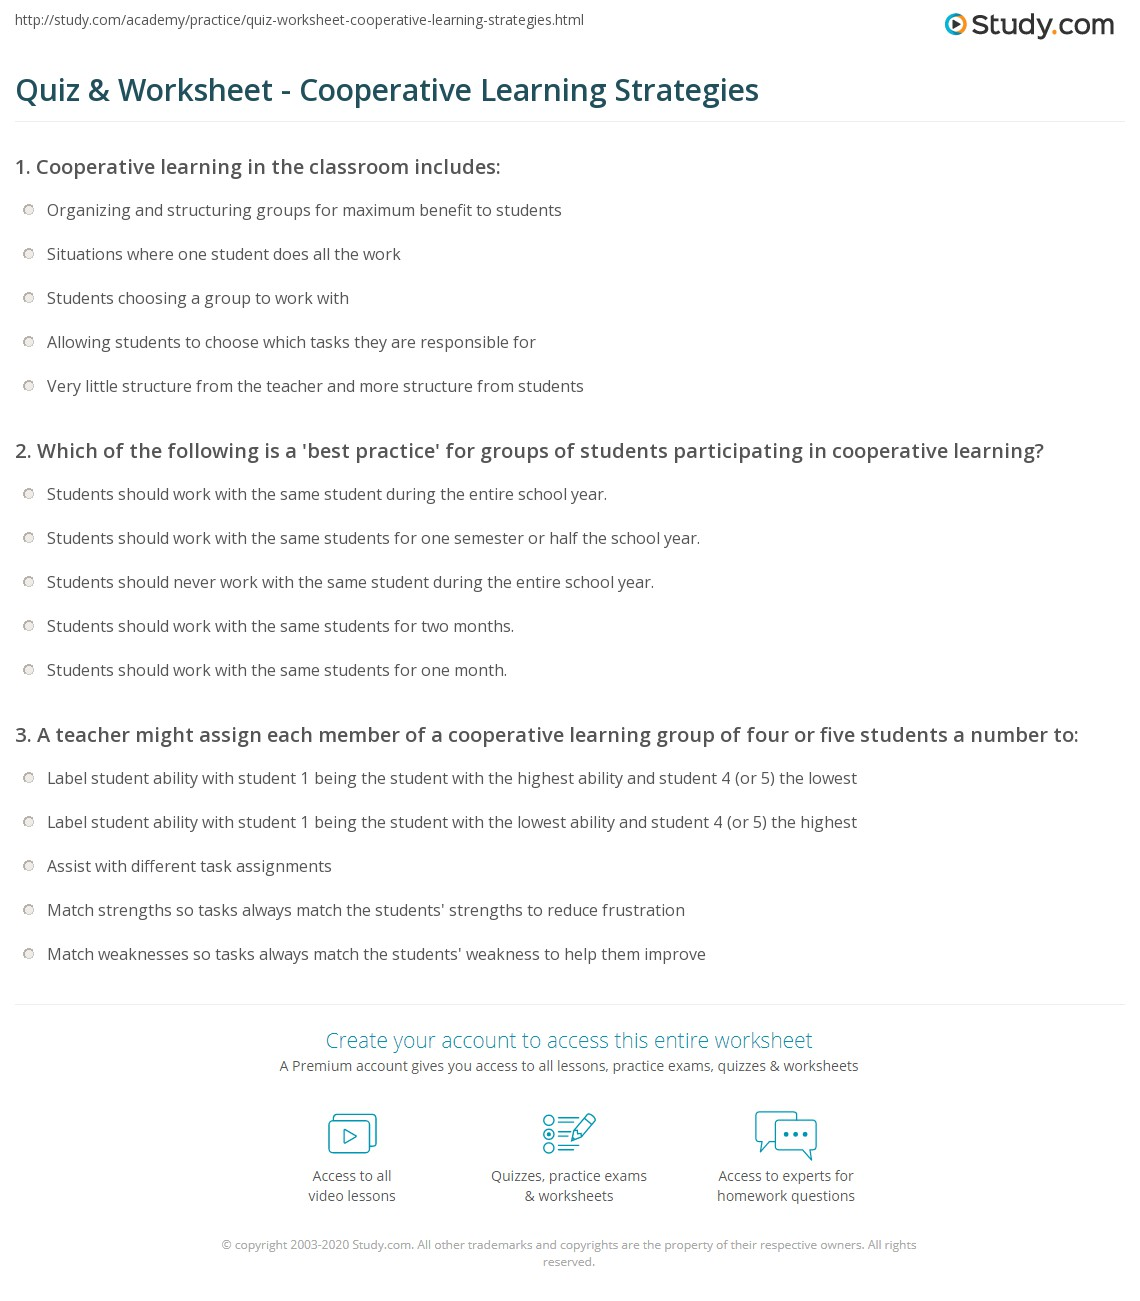 Cooperative Learning Strategies Elementary School